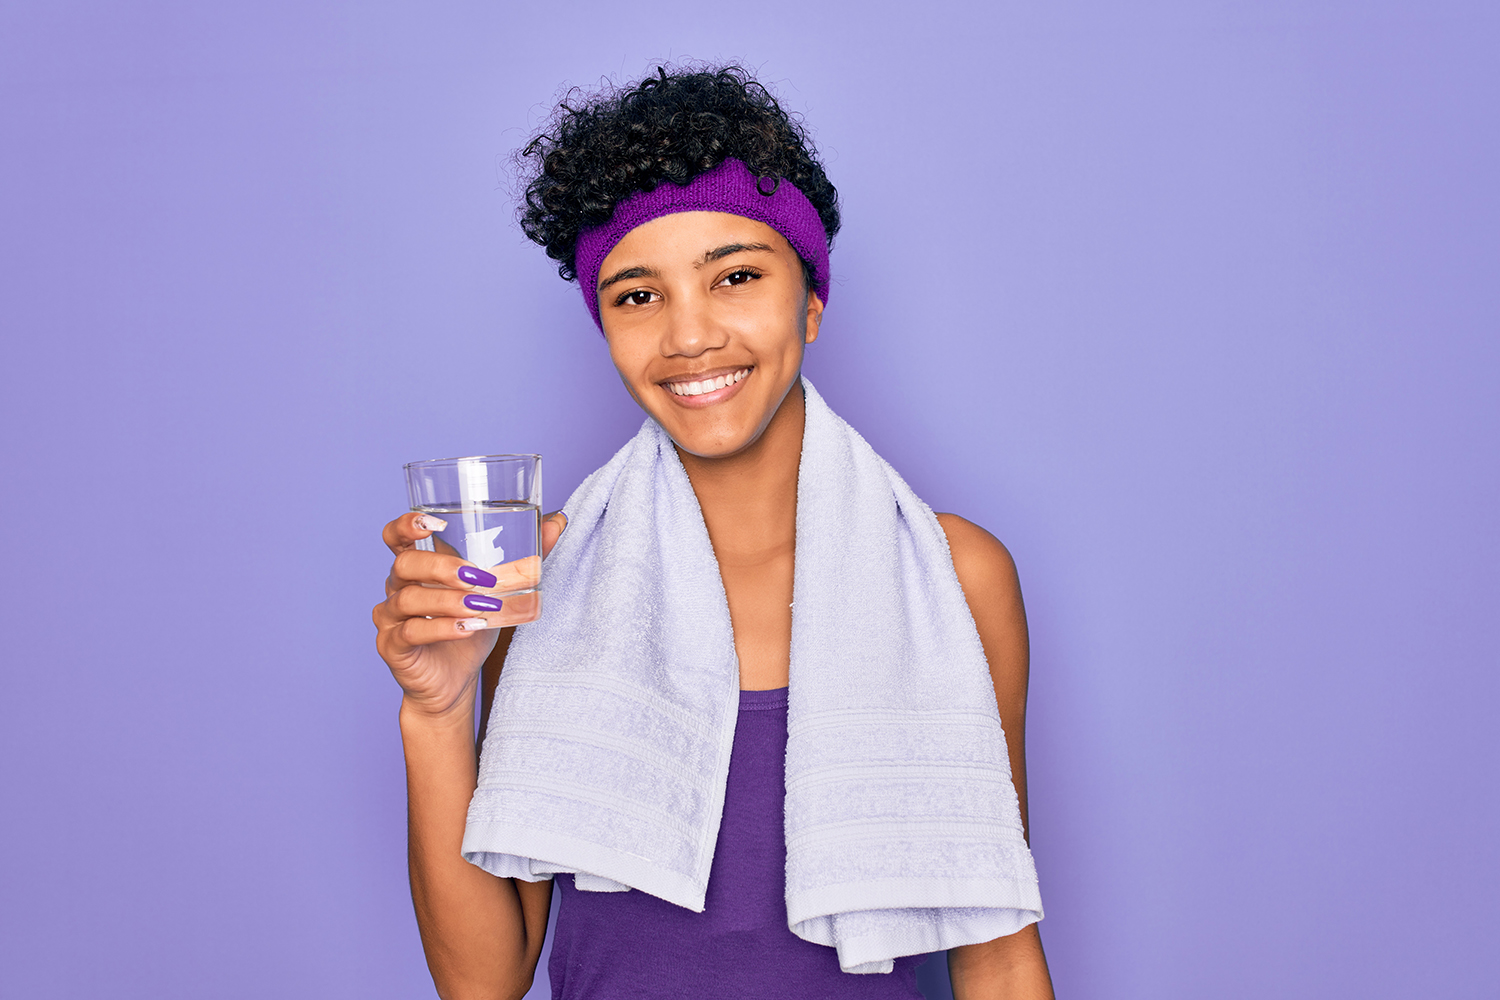 Here are 10 great reasons to drink more water